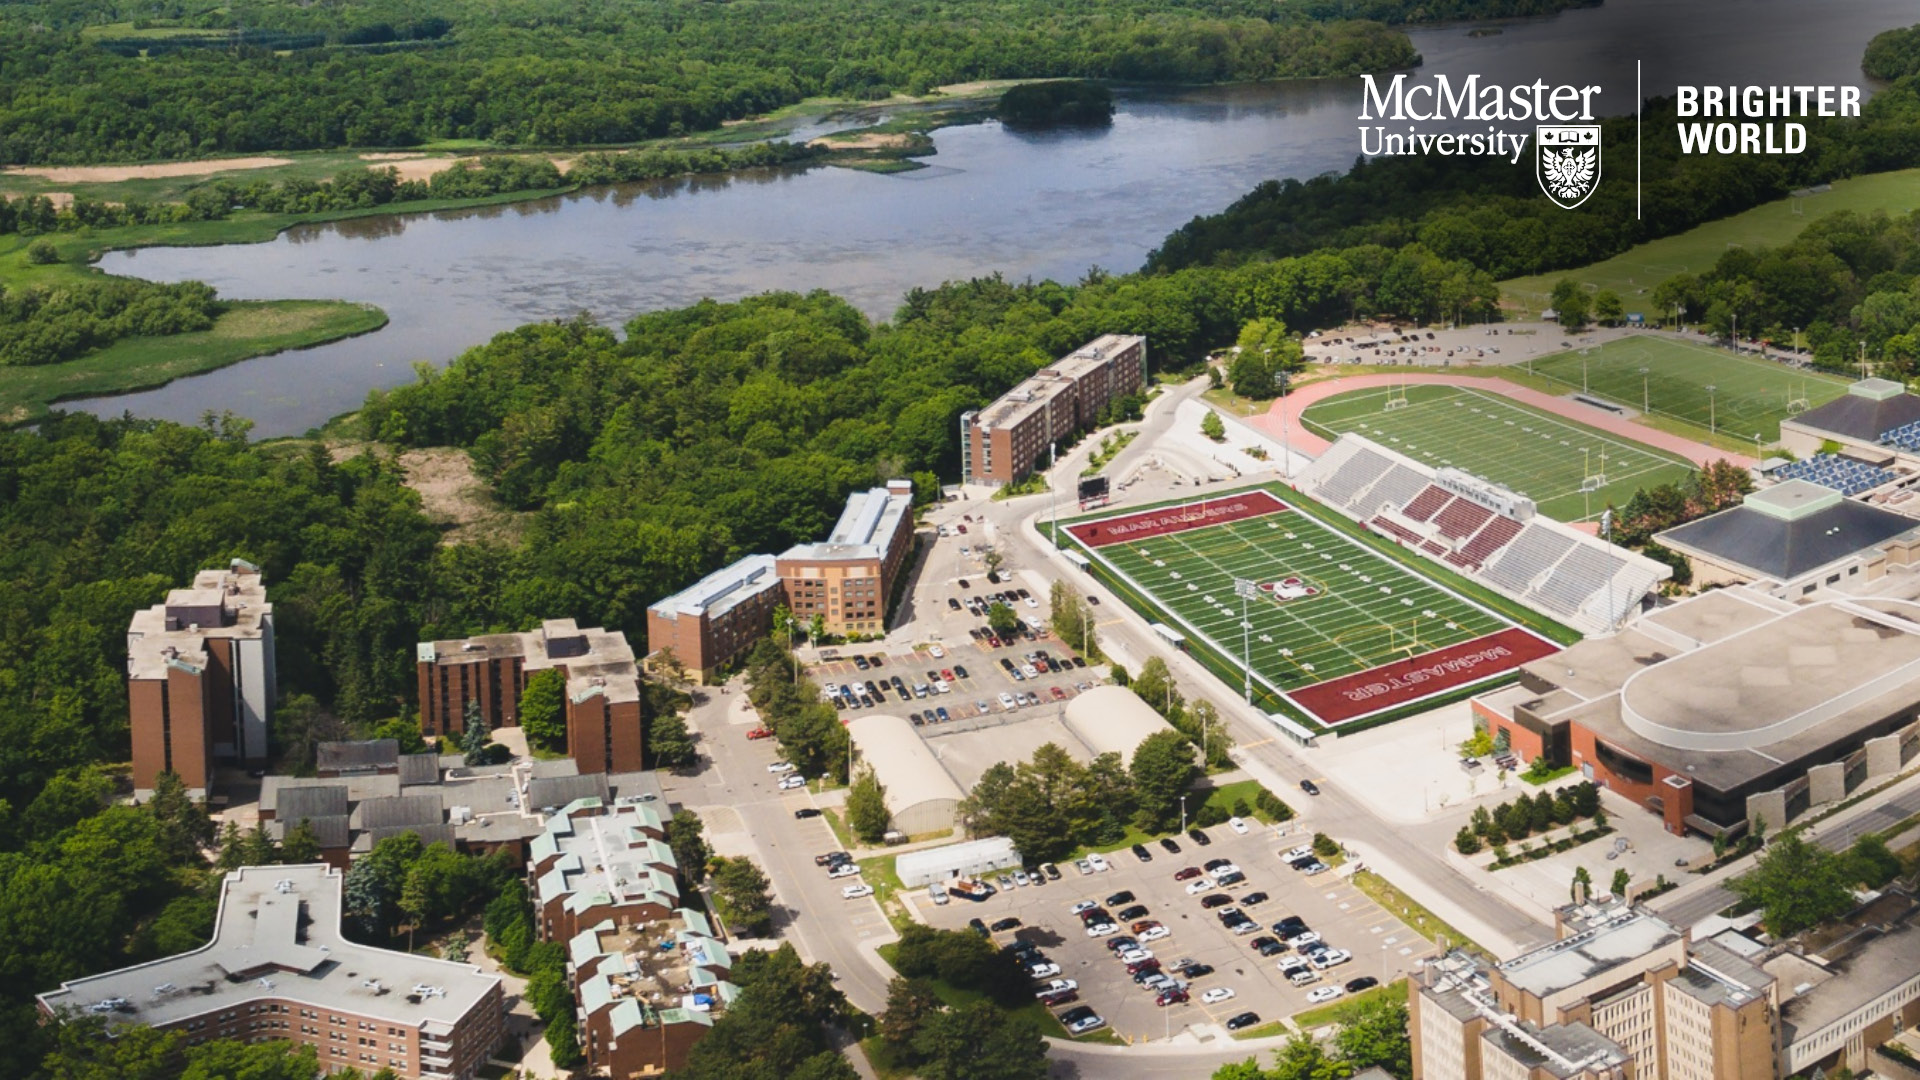 McMaster Campus and Cootes Paradise